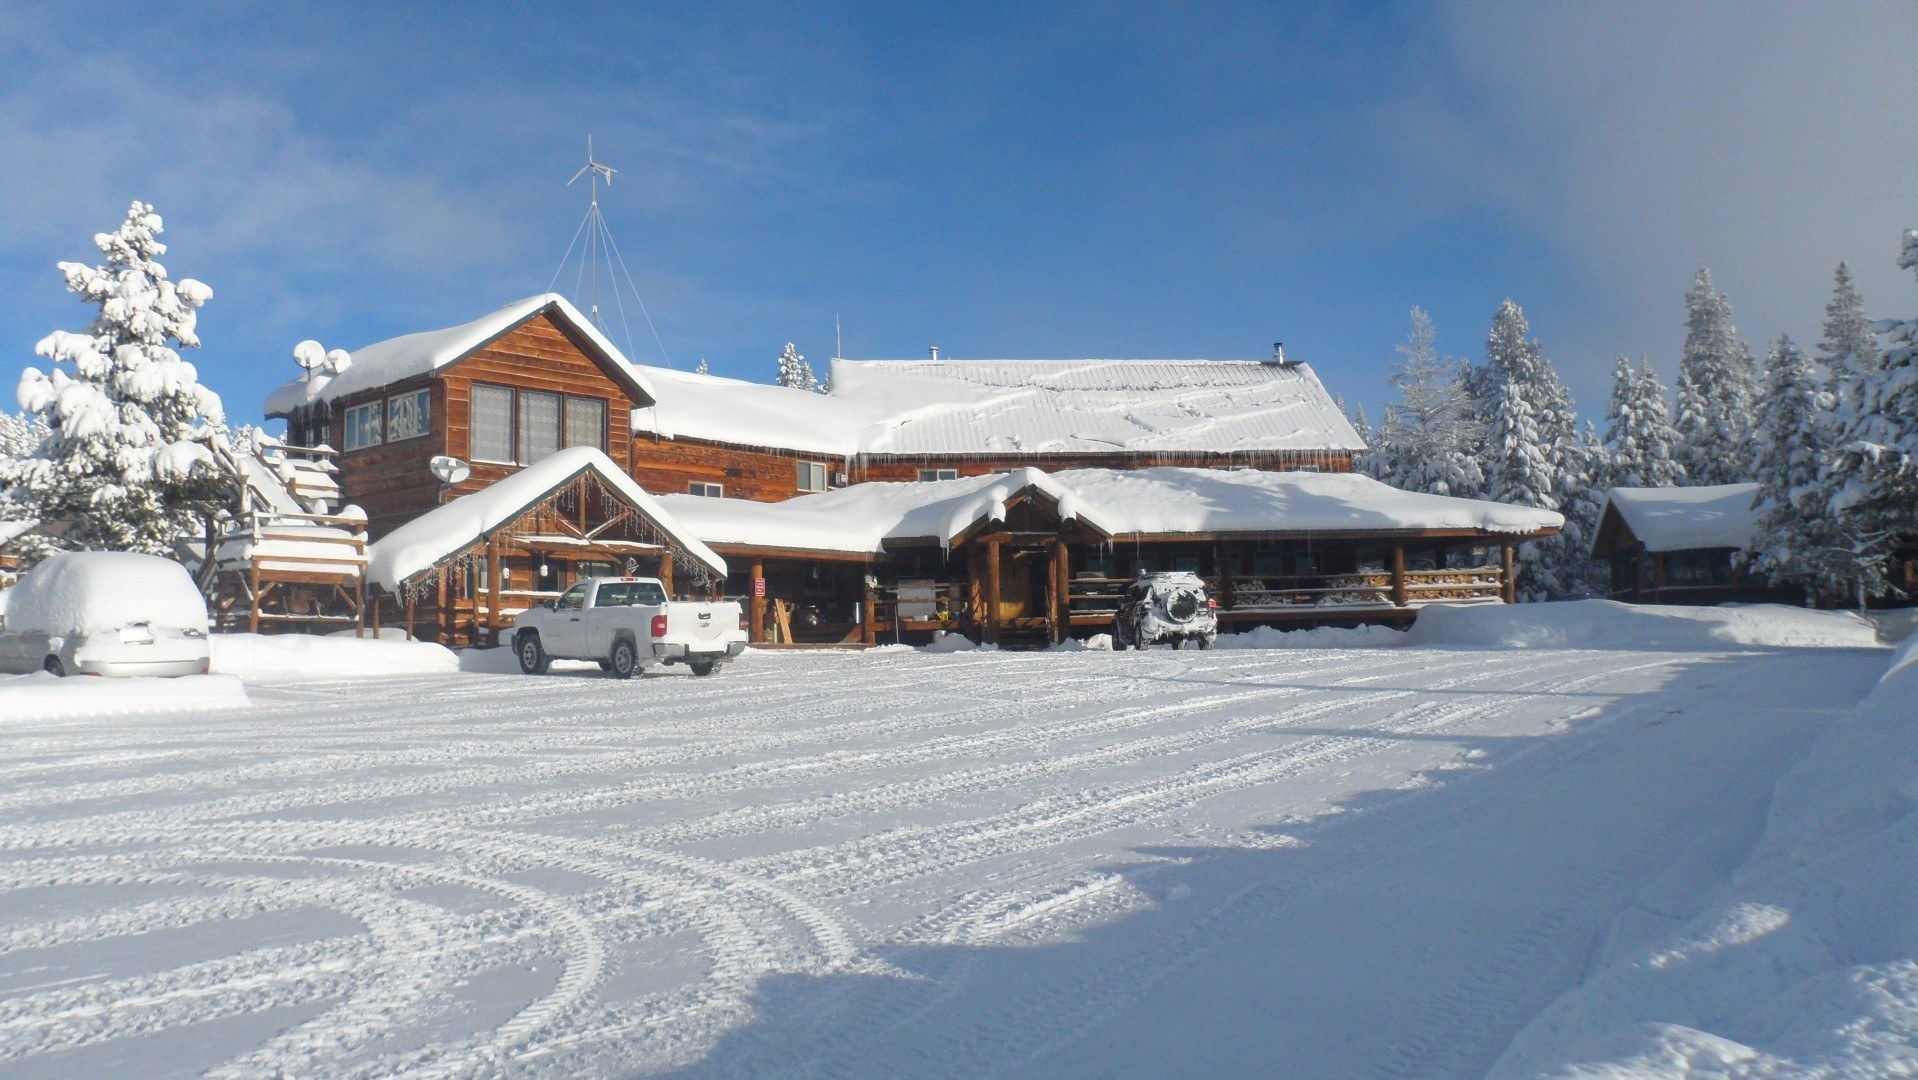 LODGE WINTER 5